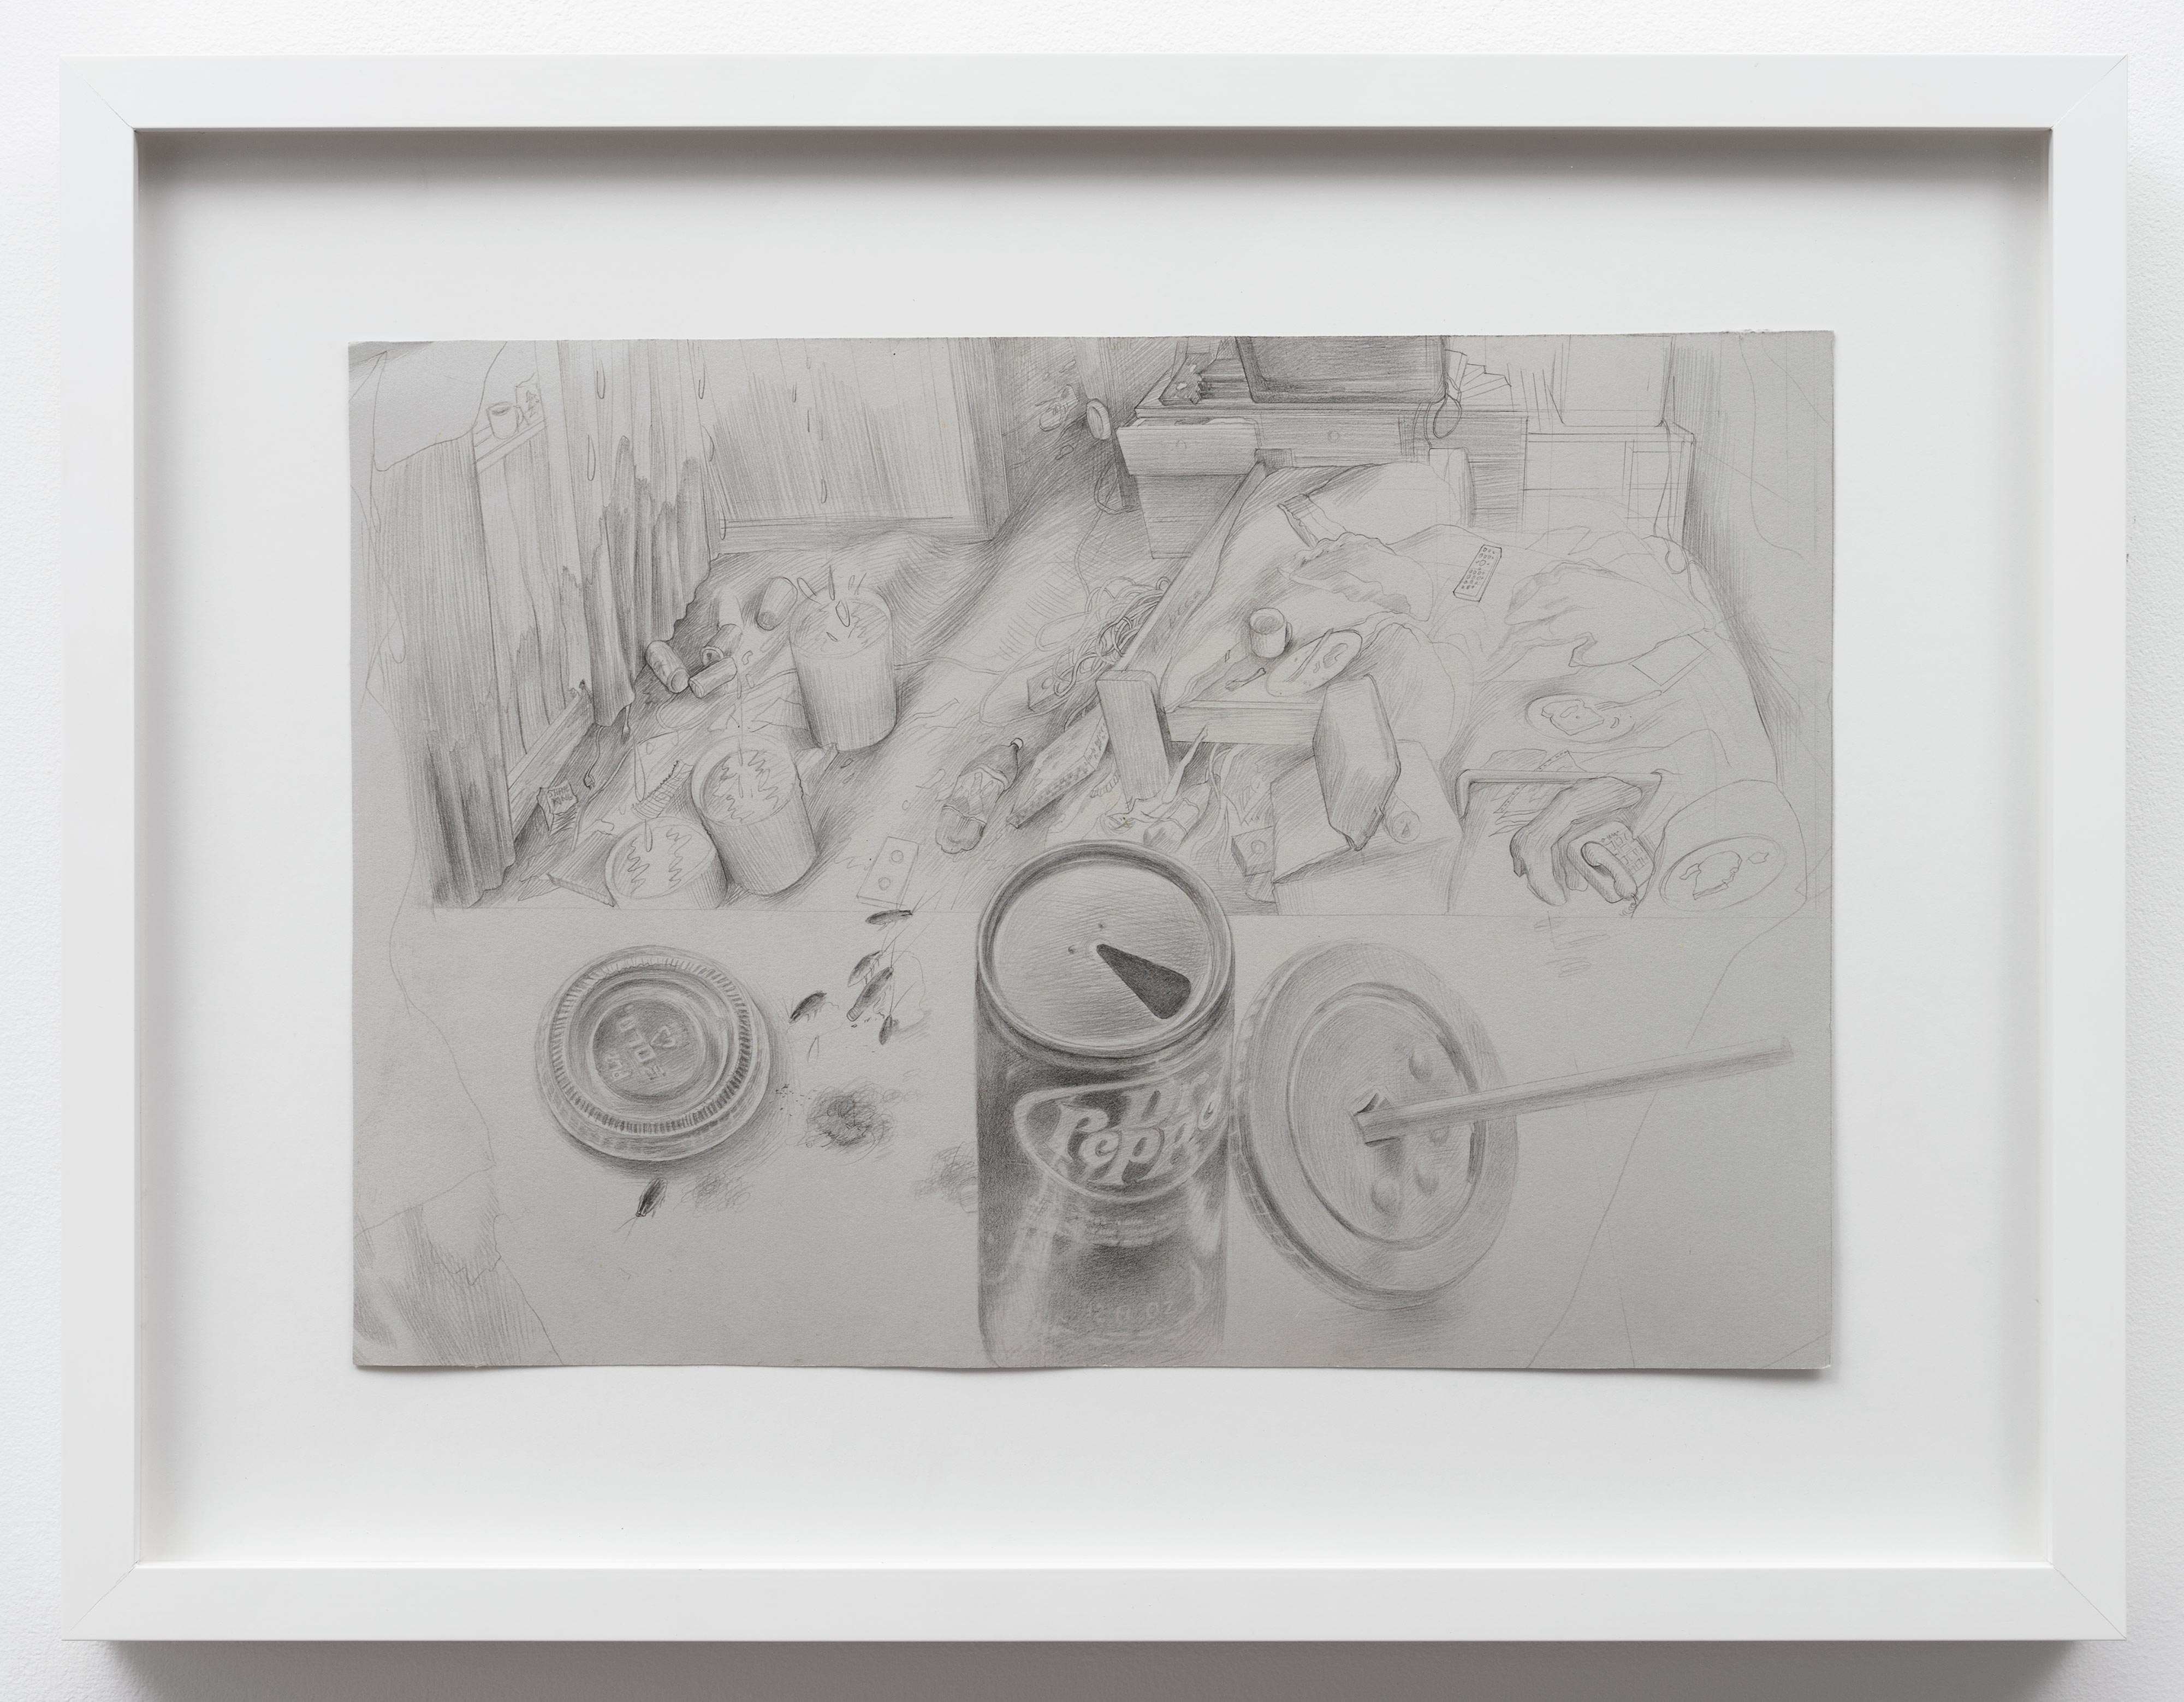 Brandi Twilley<br>Dr. Pepper and Living Room<br>2014<br>Graphite on gray paper<br>15 x 10.5 in (38 x 26.5 cm)